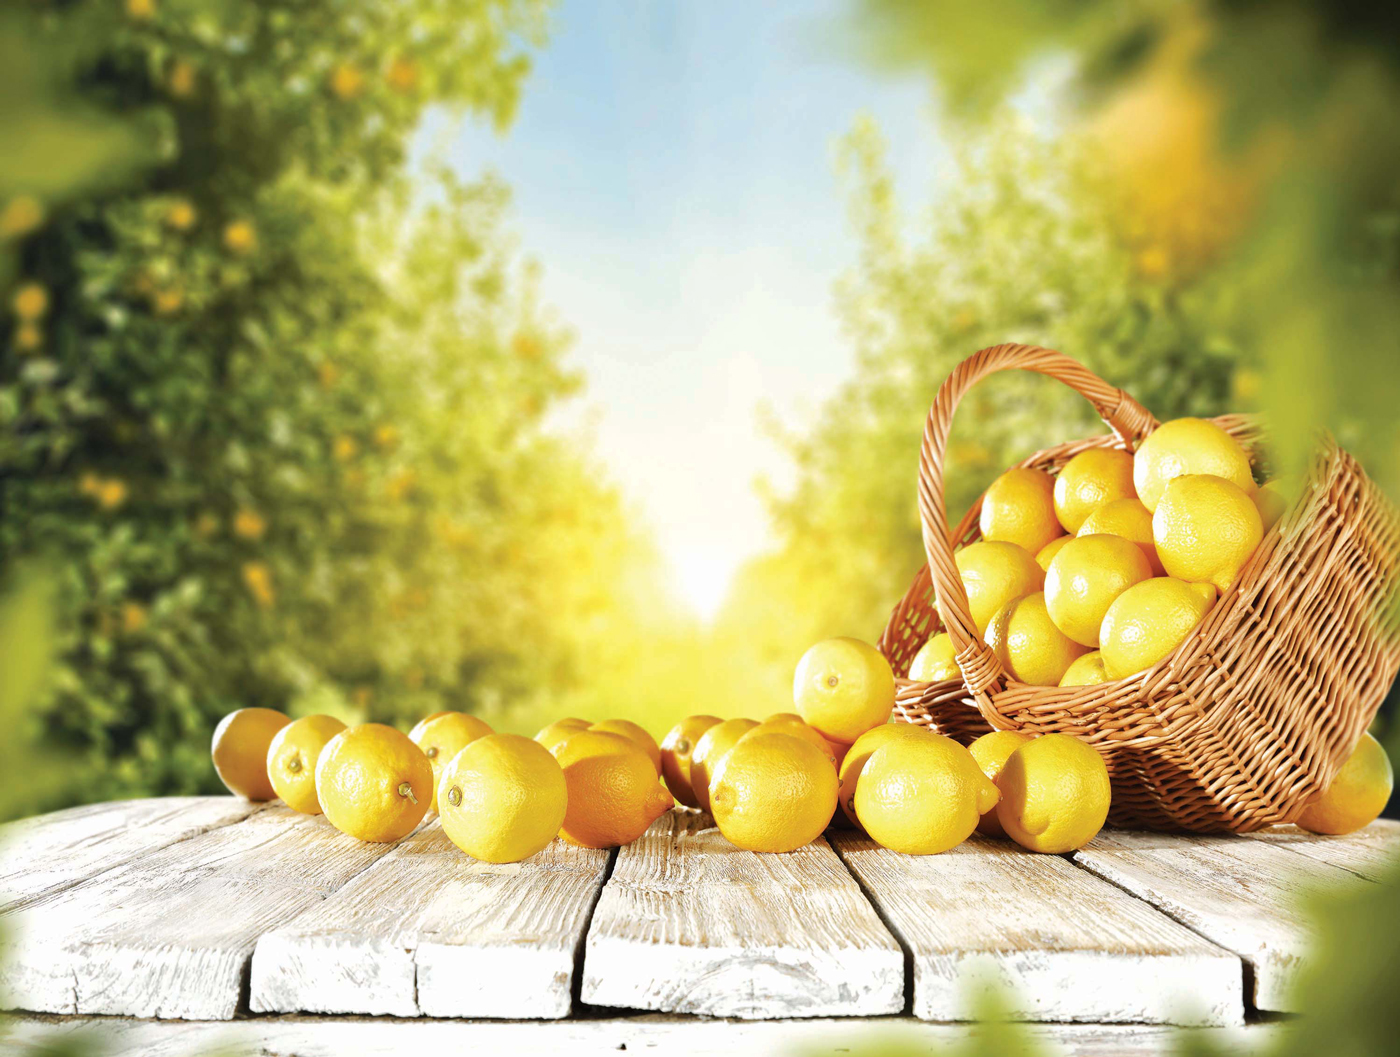 Lemon Food and Drink Jigsaw Puzzle